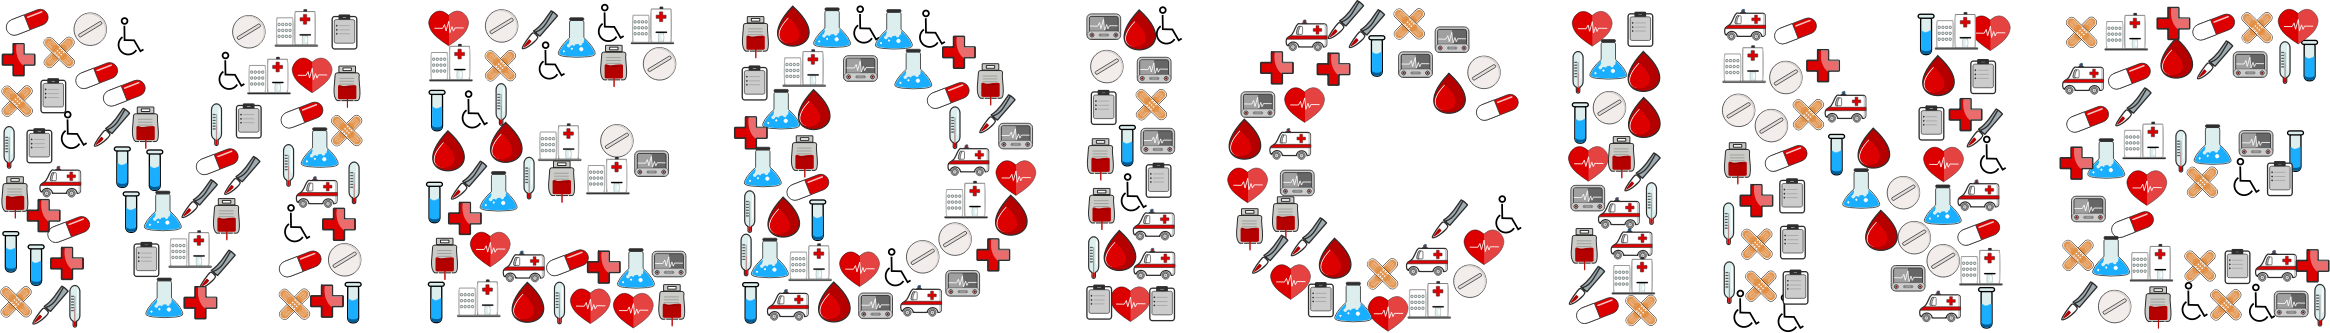 Medicine clipart medical icon. Icons typography png free